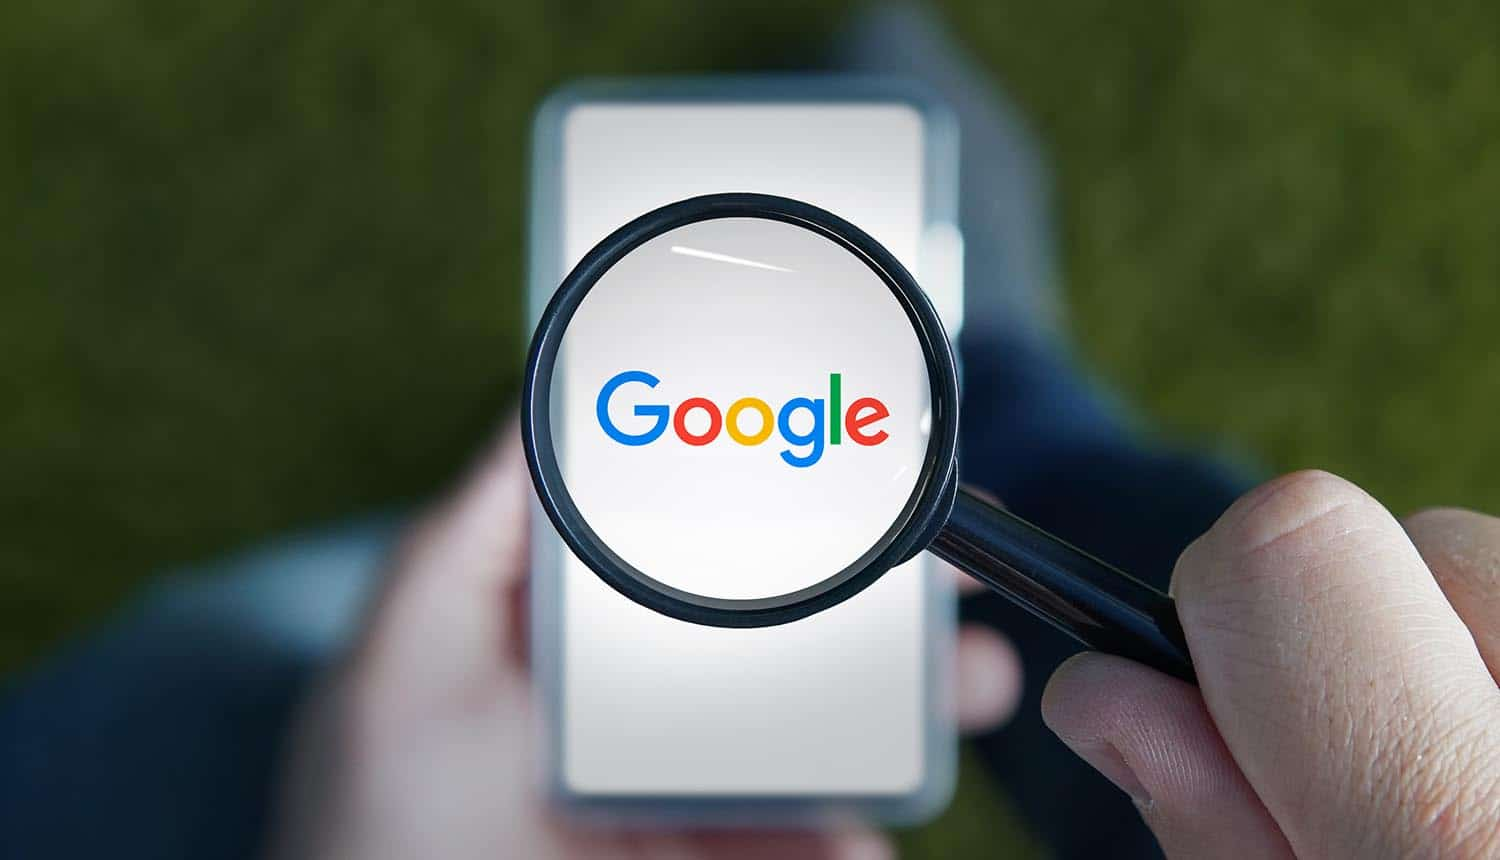 A man with a magnifying glass examines the Google logo on the smartphone showing privacy lawsuit on app tracking